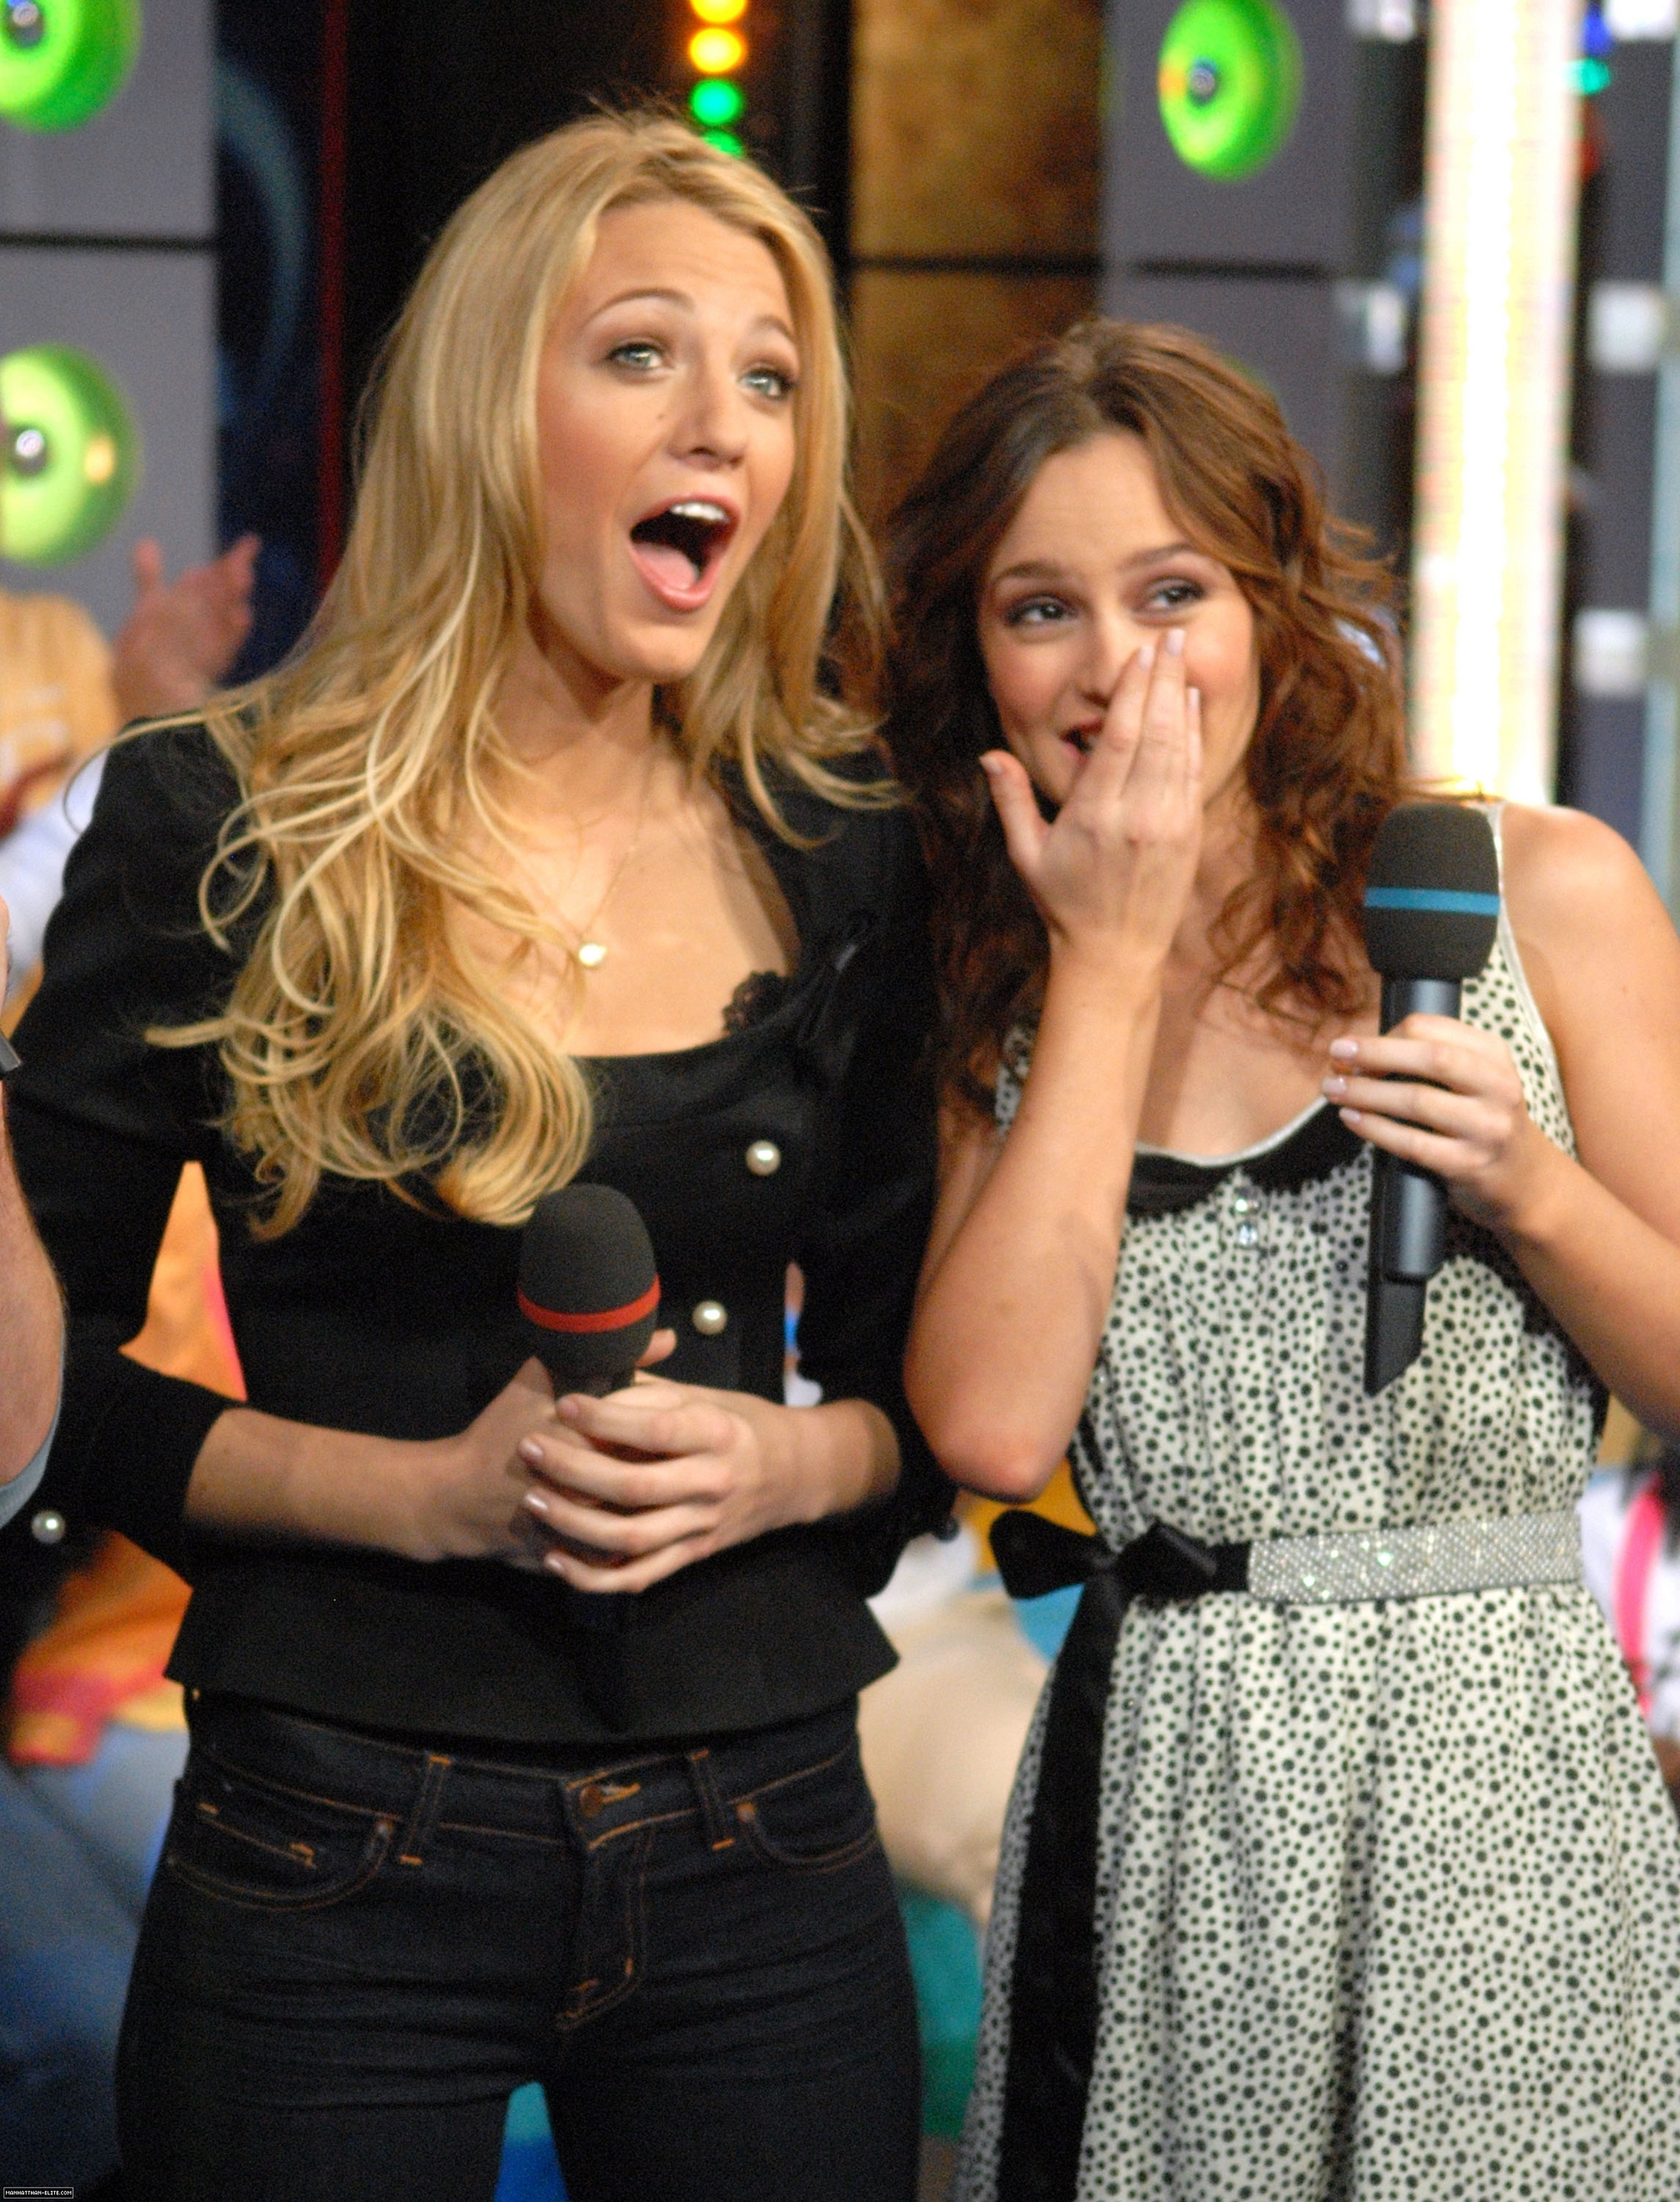 leighton and blake - Blake Lively and Leighton Meester Photo ...